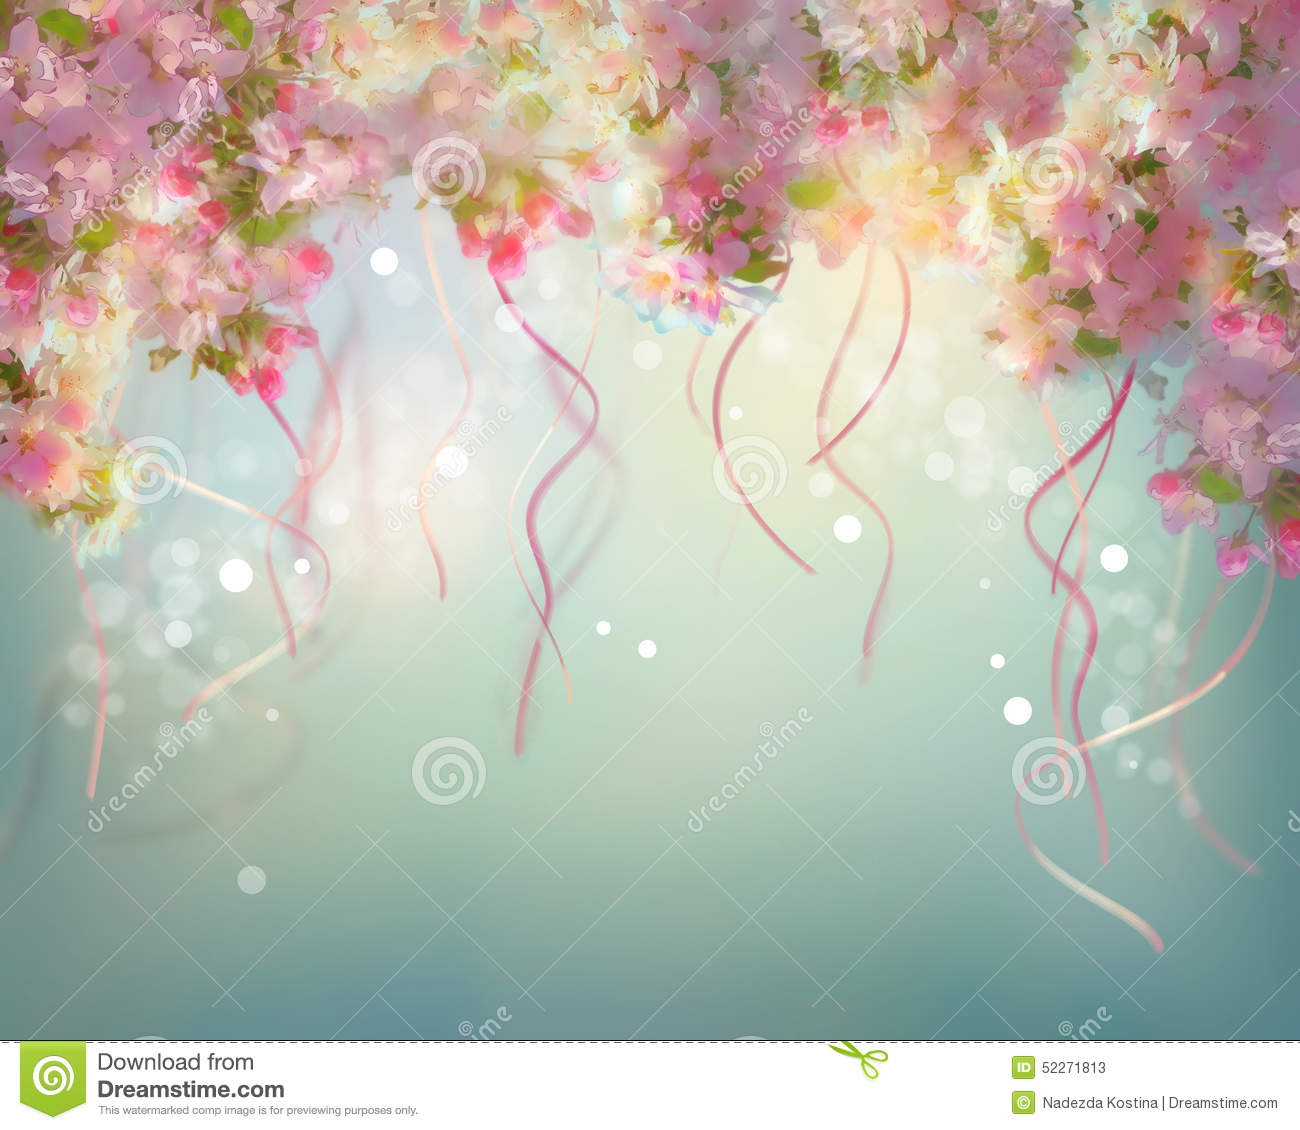 marriage background wallpapers